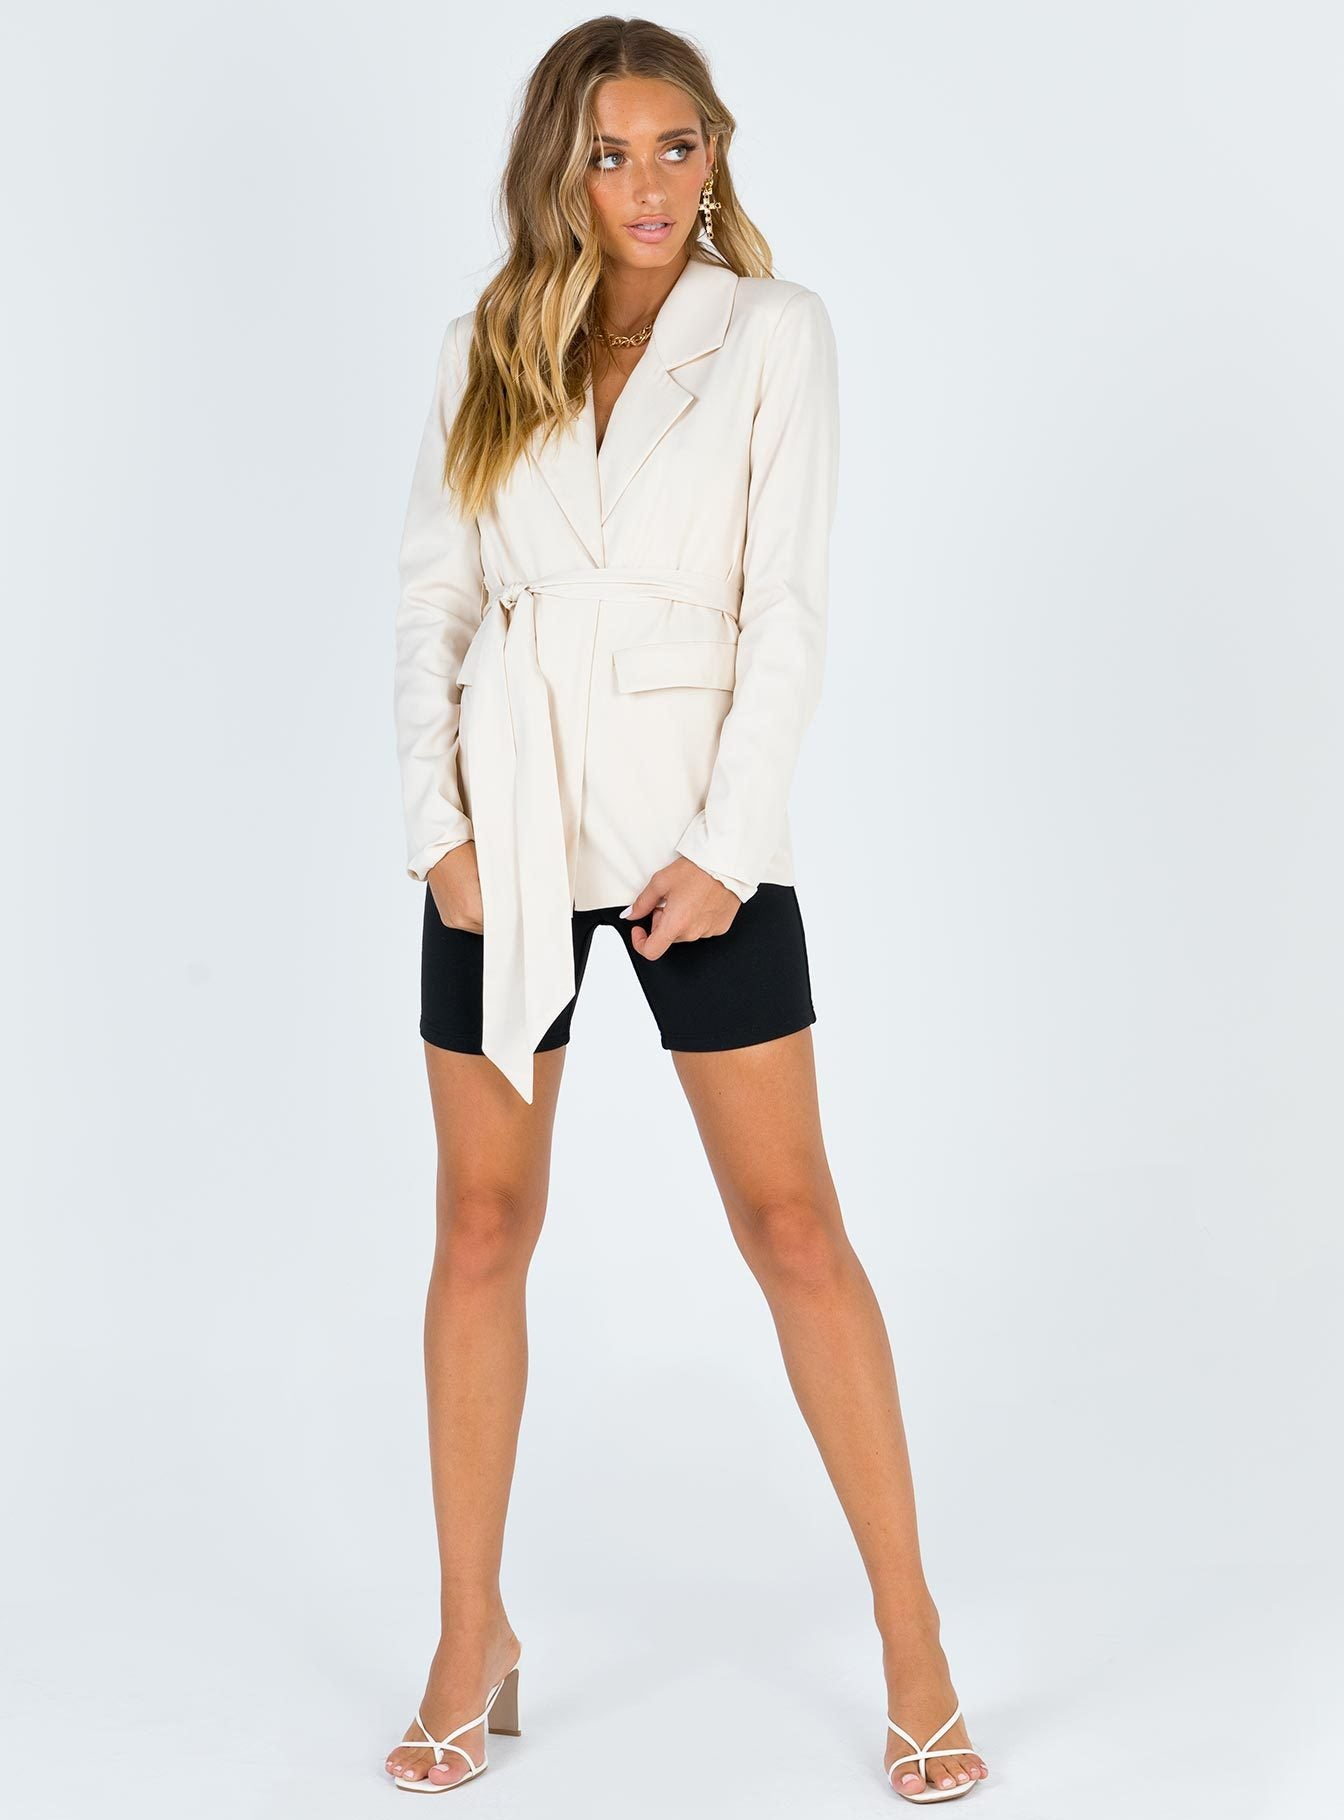 The Thea Blazer